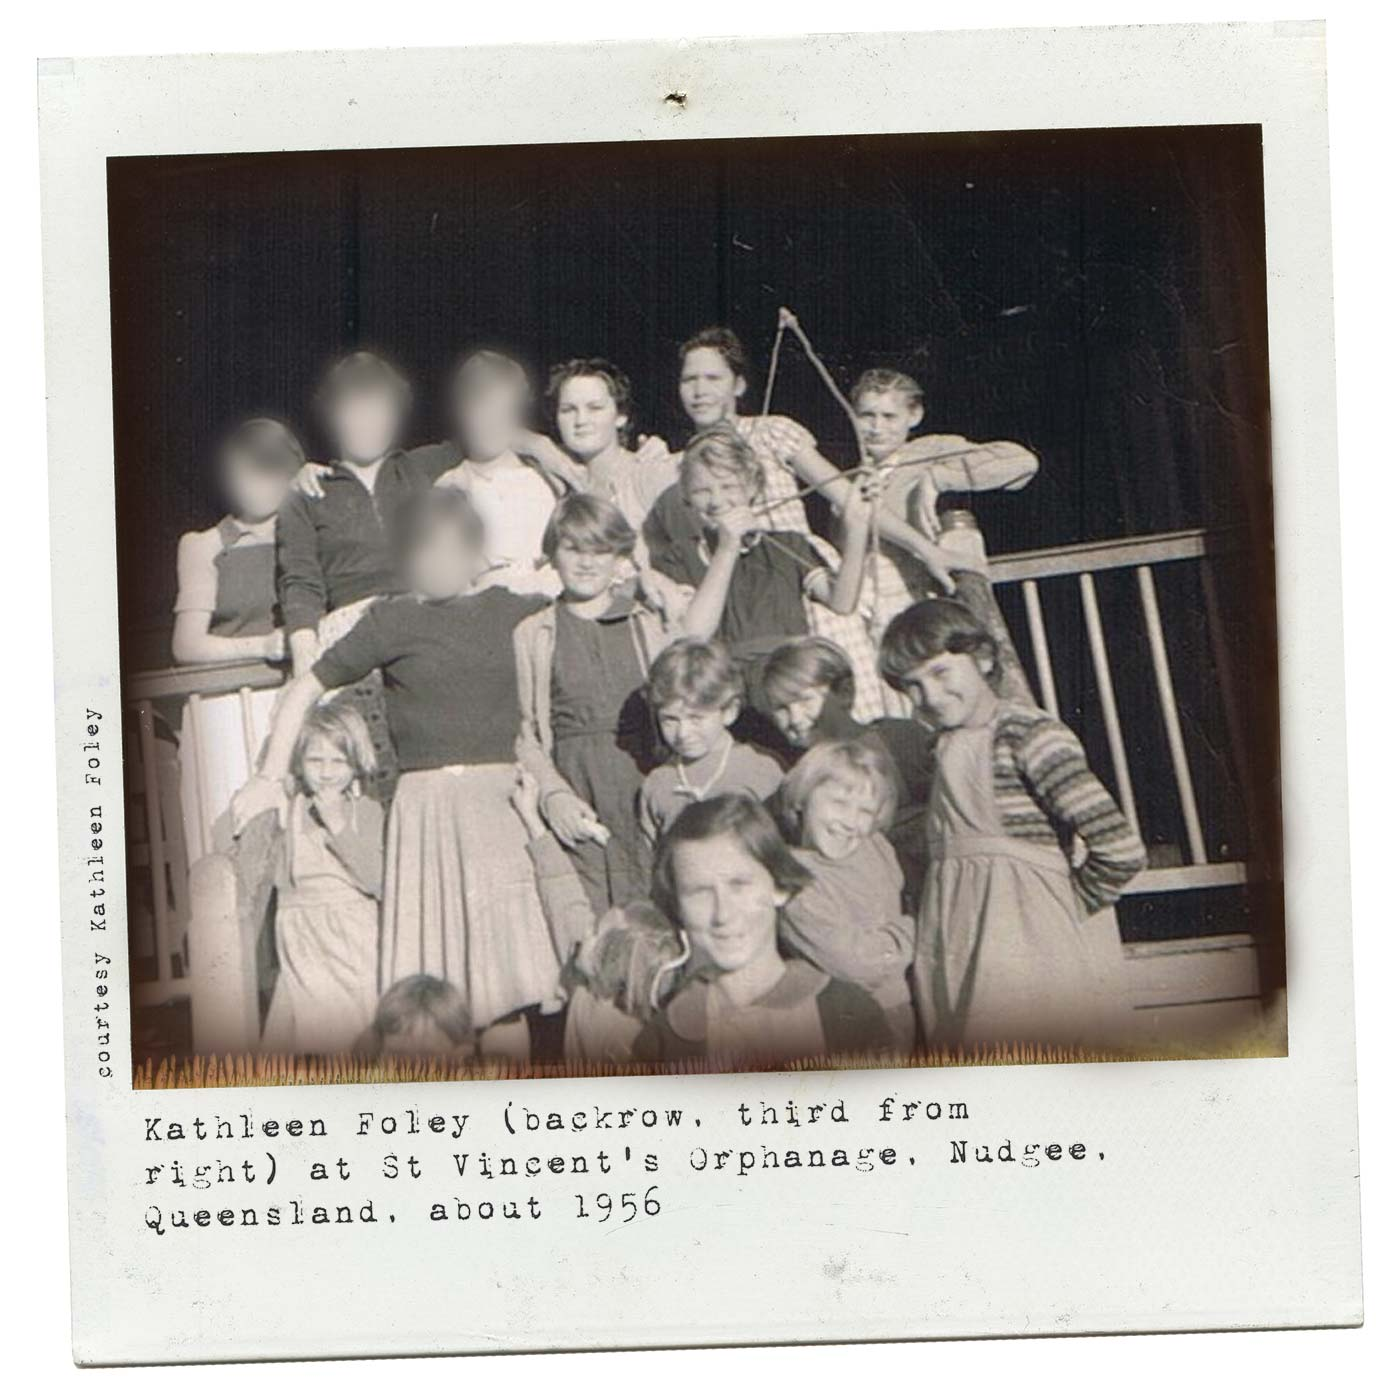 Polaroid photograph showing a group of girls standing at the front of a timber verandah rail. One of the girls holds a small bow and arrow. Some of the older girls' faces have been blurred. Typewritten text at the bottom reads 'Kathleen Foley (back row, third from right) at St Vincent's Orphanage, Nudgee, Queensland, about 1956'. 'Courtesy Kathleen Foley' is typed along the left side.